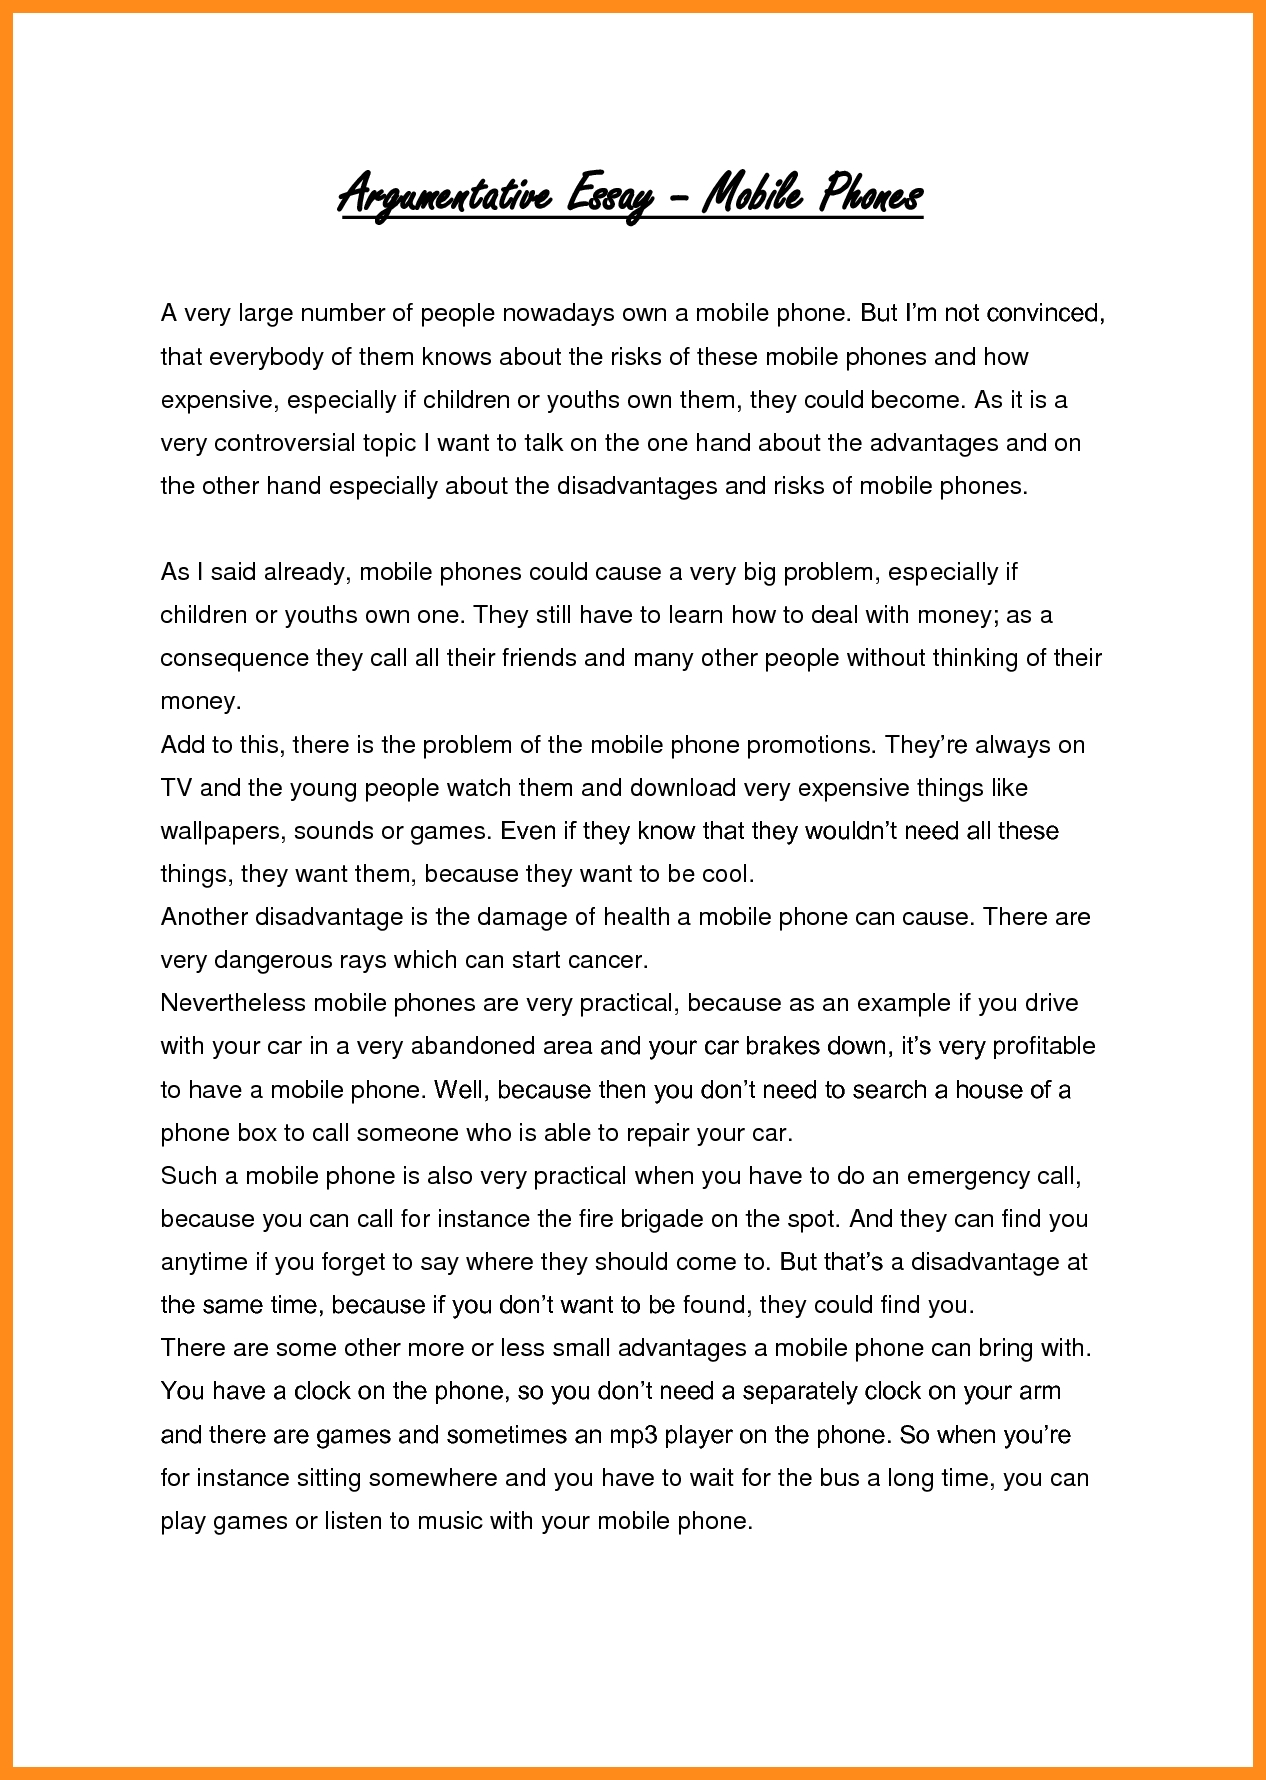 023 Essay Example Meet The Kids Cycle Evaluative Examples Persuasive Samples For High School Gre Essays With Regard To Child Discipline Argumentative On Rare Children Children's Day In Kannada Telugu Full